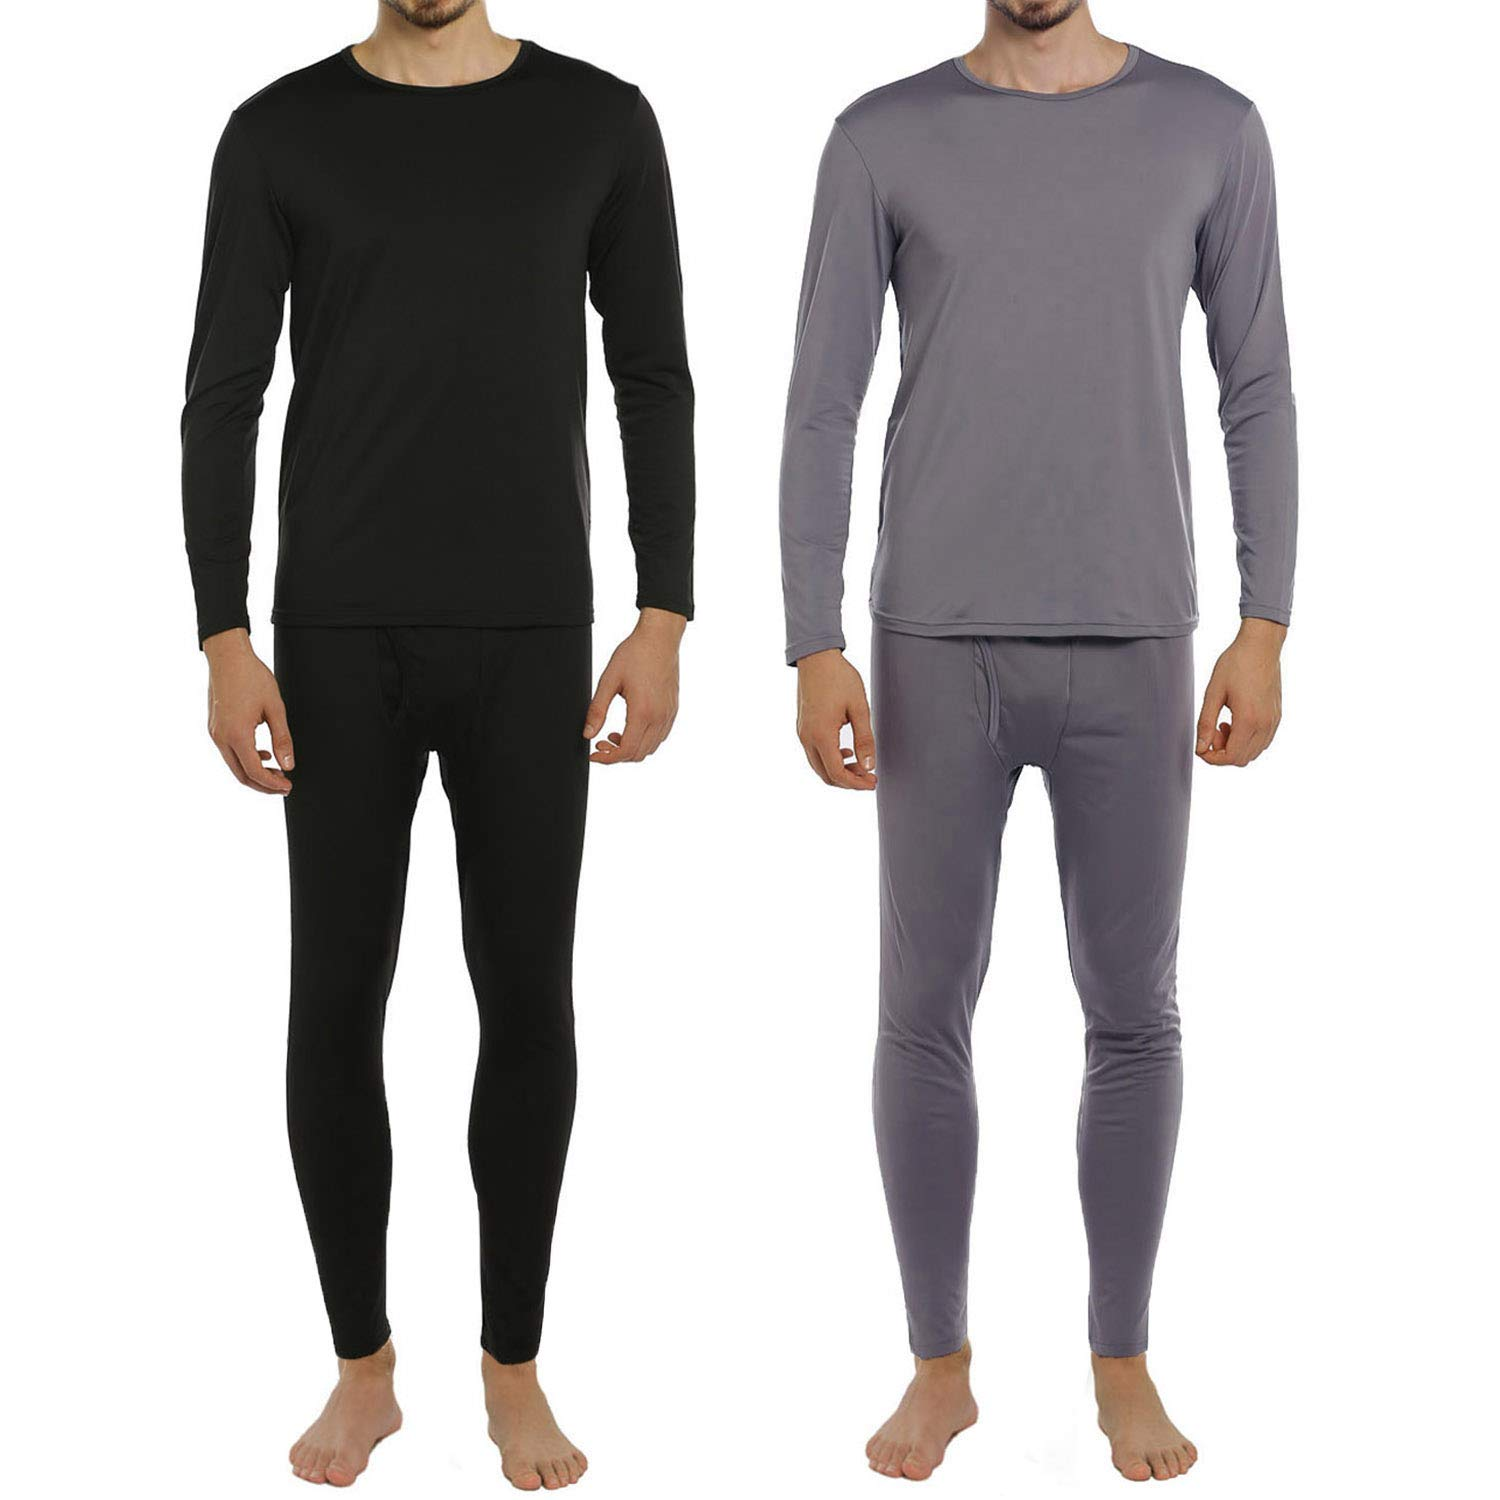 ViCherub Men's Thermal Underwear Set Fleece Lined Long Johns Winter Base Layer Top & Bottom 1 or 2 Sets for Men by ViCherub